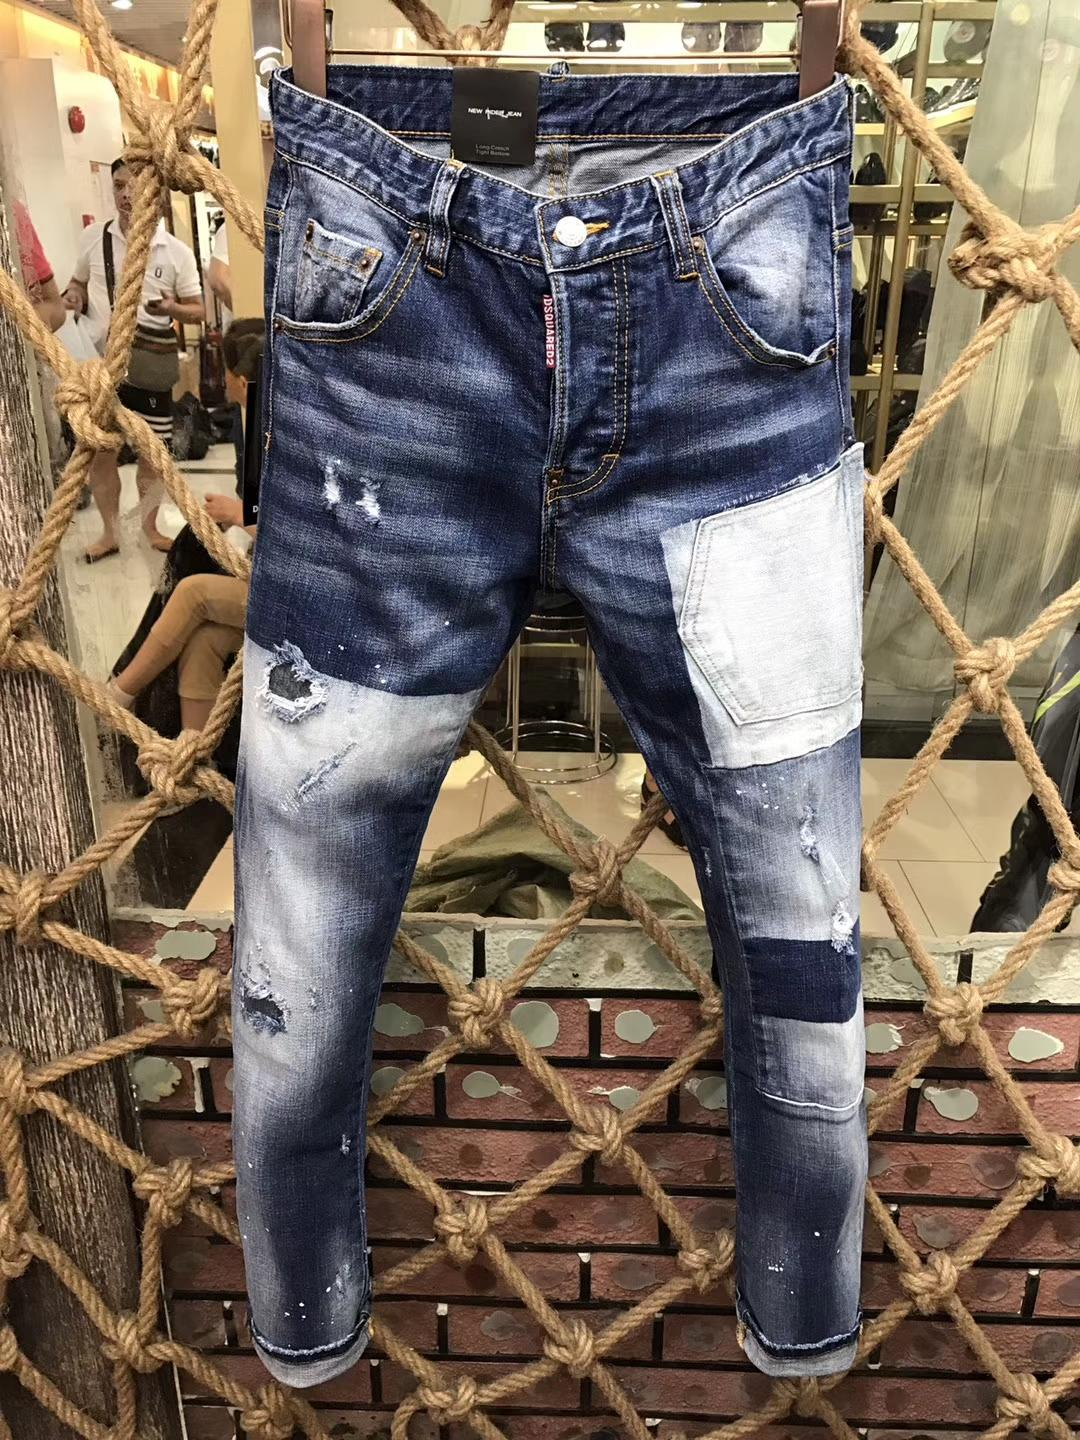 Hot Sale Patchwork Jeans Men 2020 New Skinny Jeans Fashion Biker Denim Overall Skinny Pants Casual Mens Clothes .